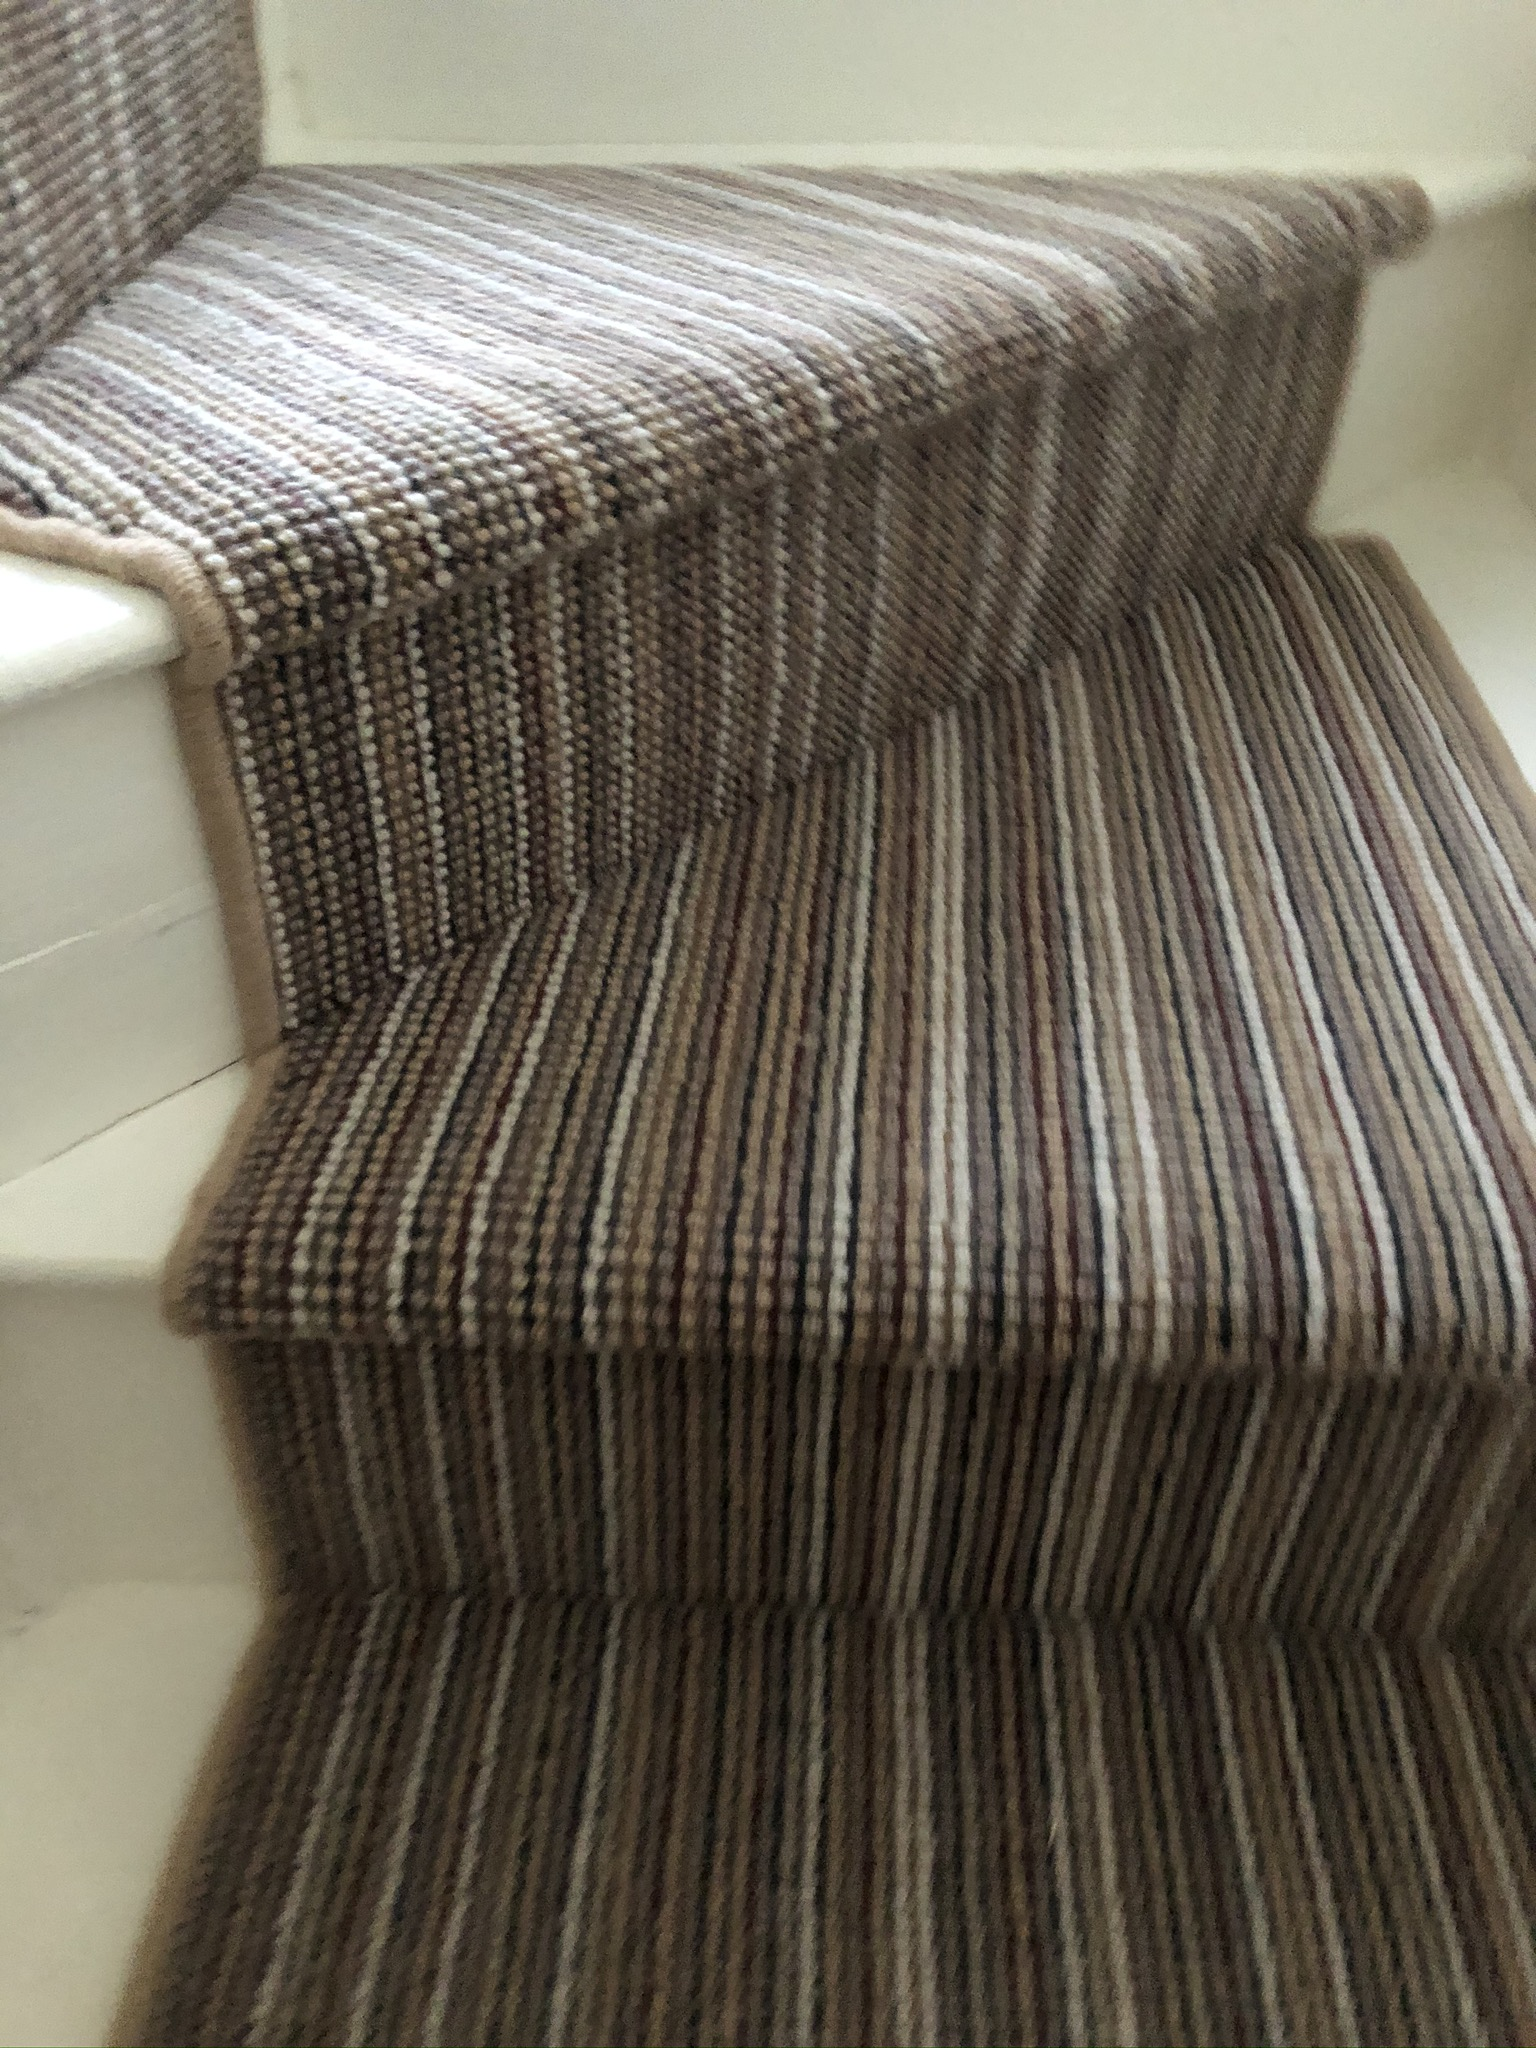 Multicolour Stripe Carpet Installation in Islington 3